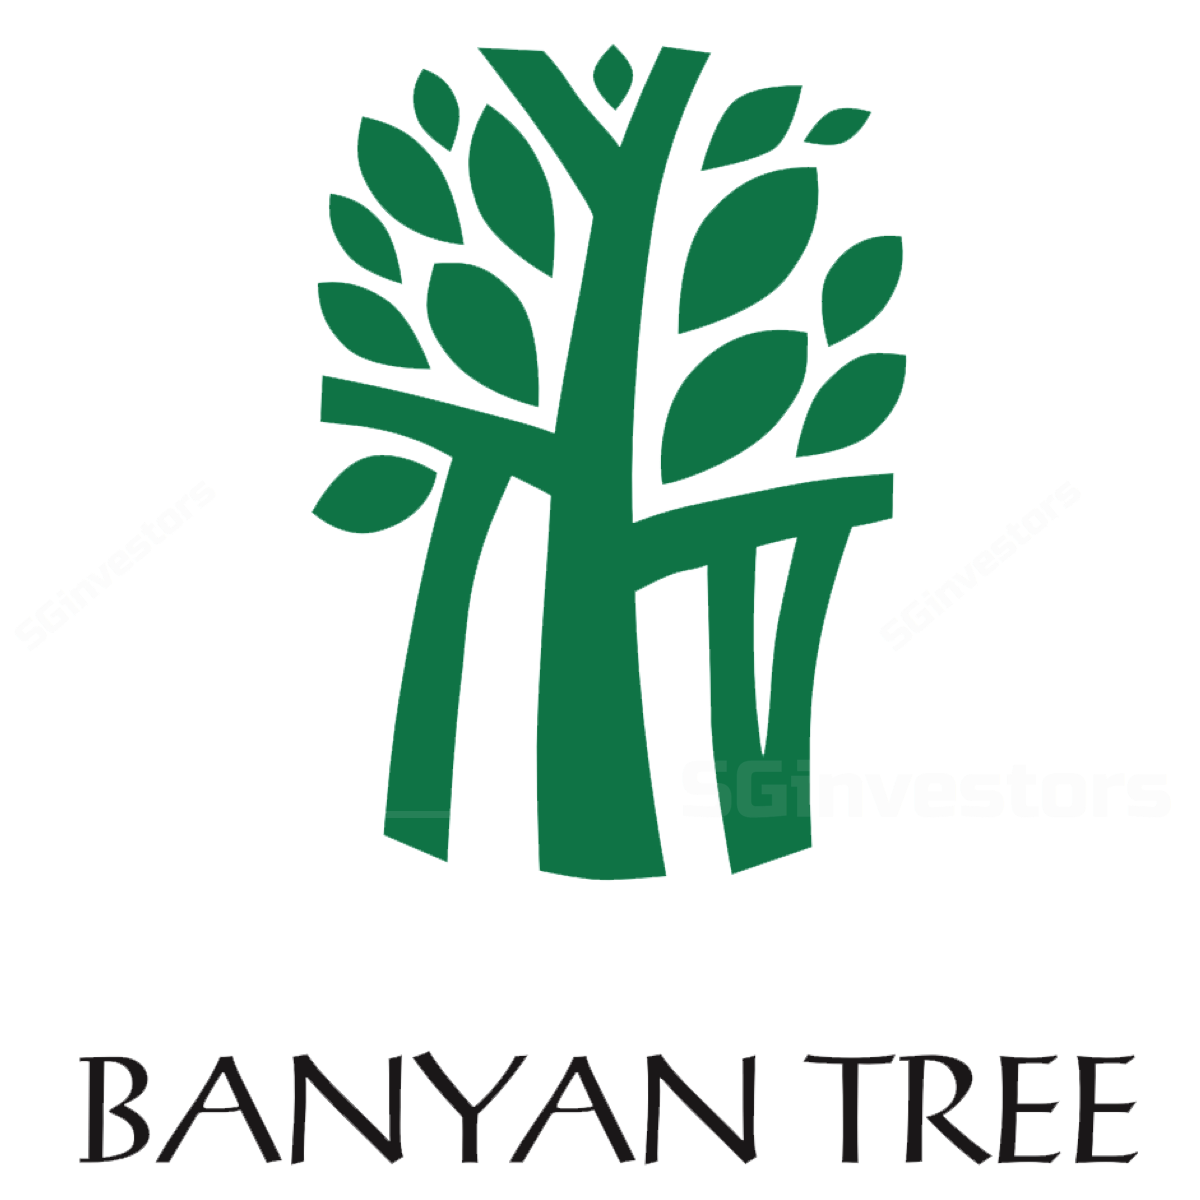 Banyan Tree Holdings Limited - Phillip Securities 2017-08-14: Turnaround In Operations